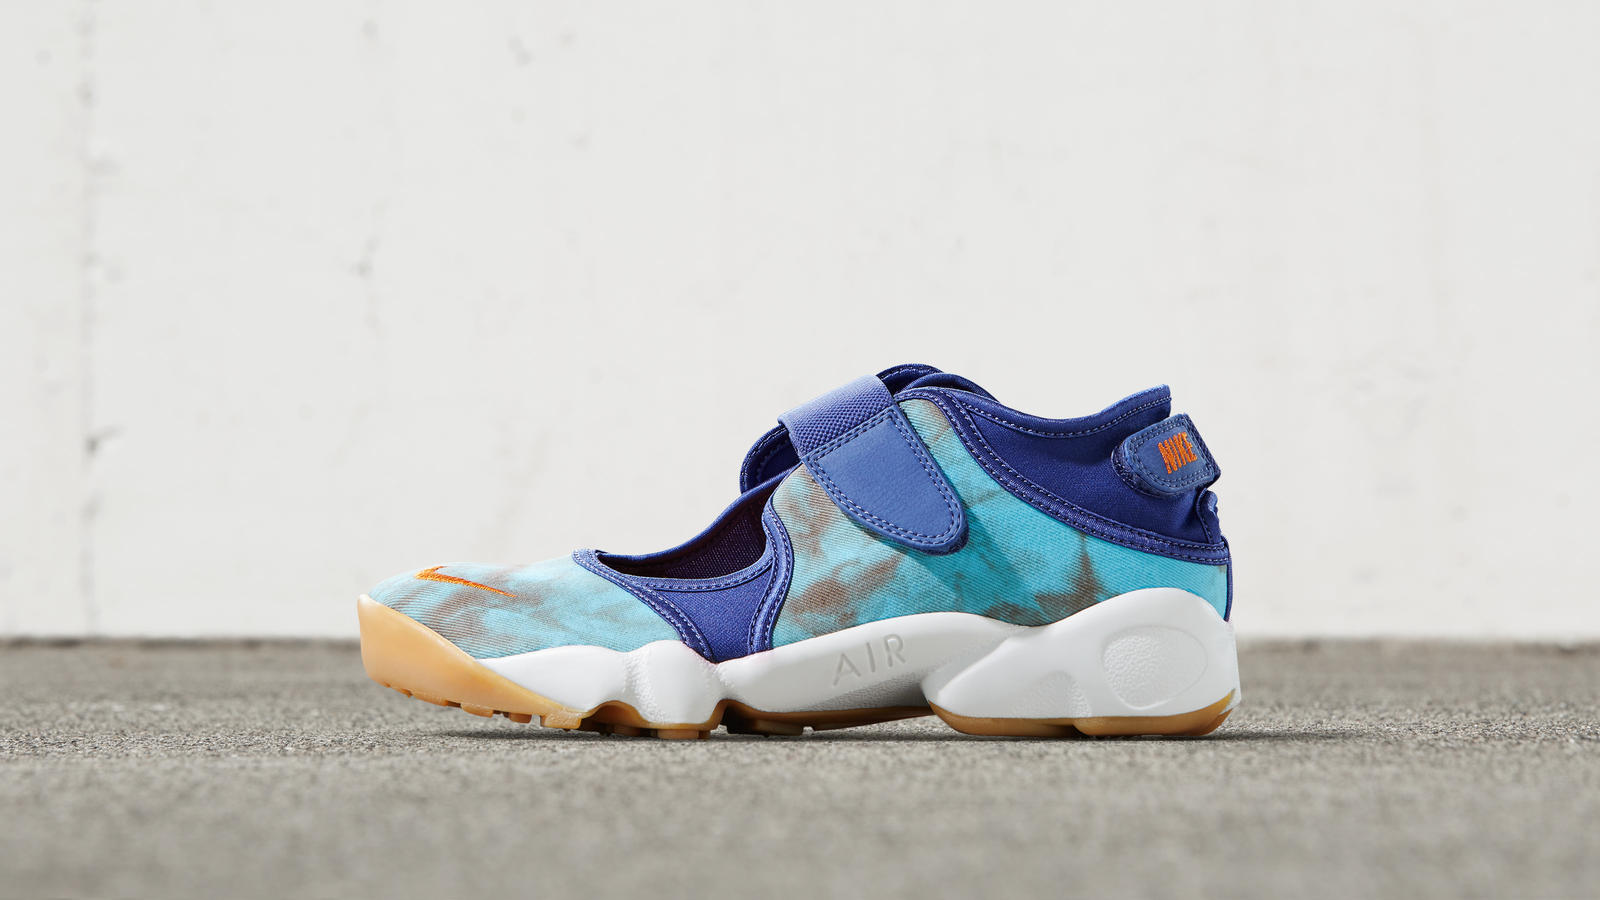 Nike news sneaker feed air rift blue p 1957 hd 1600